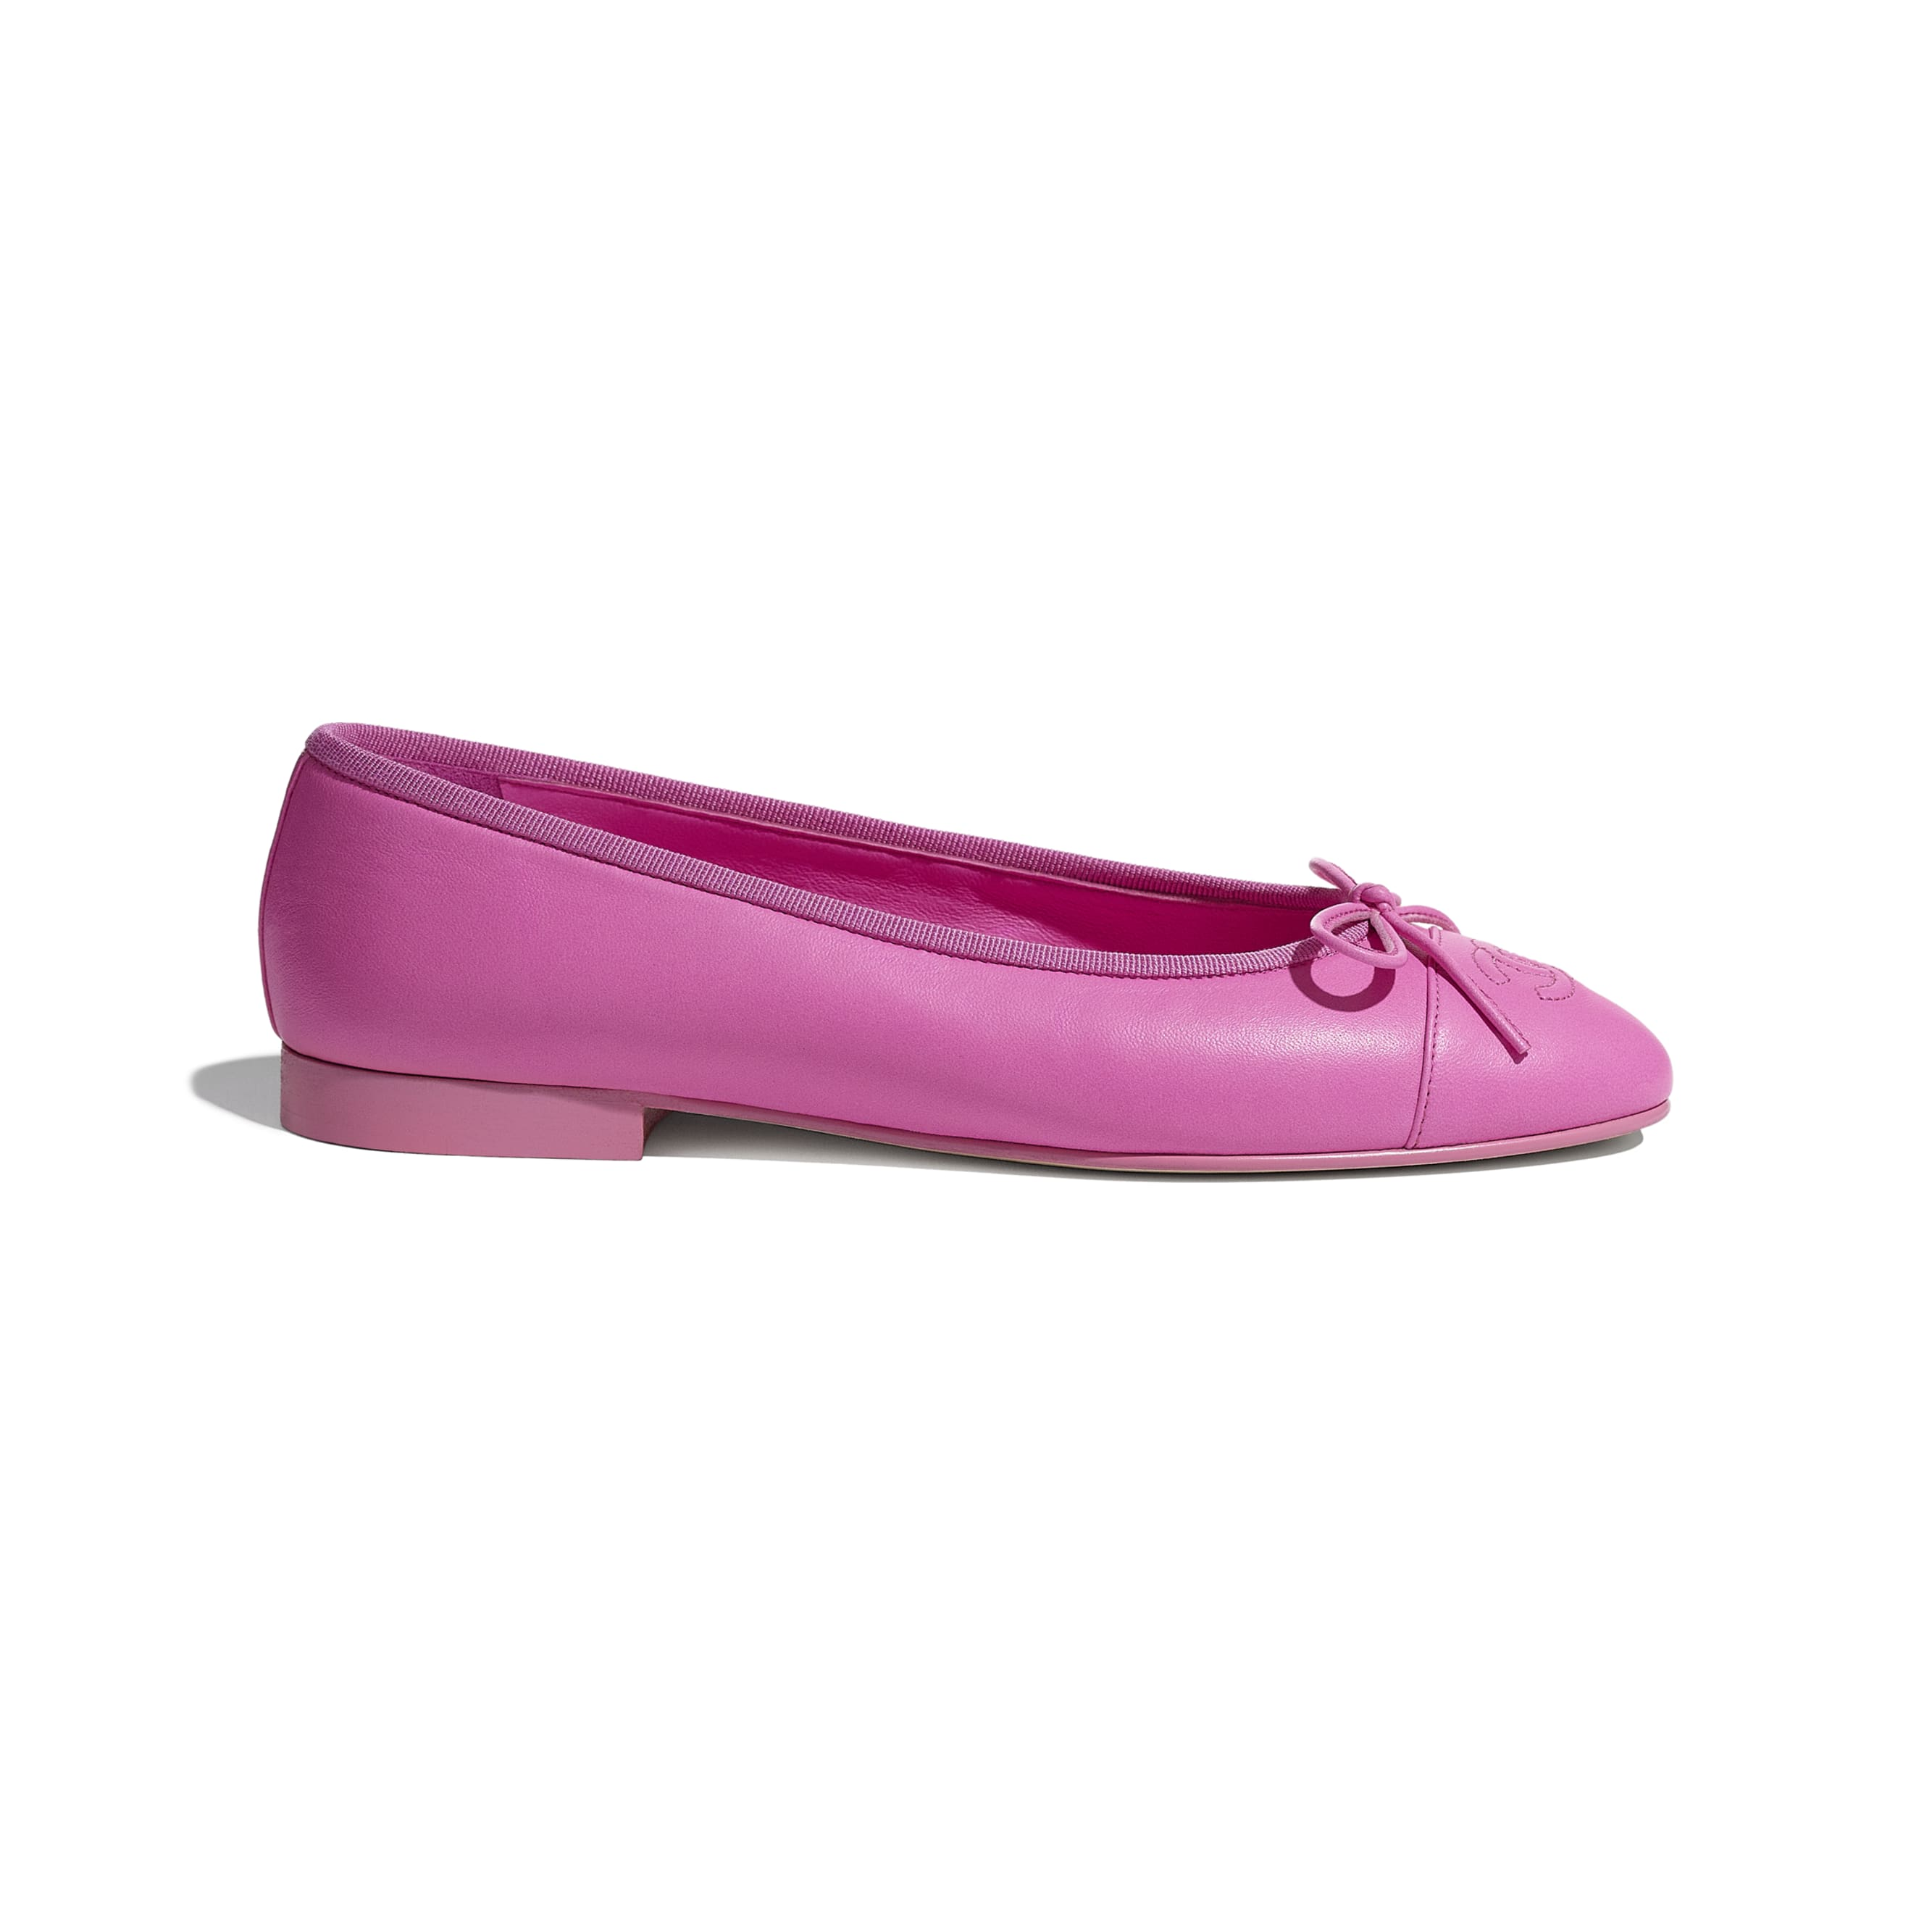 Flats - Neon Pink - Lambskin - CHANEL - Default view - see standard sized version